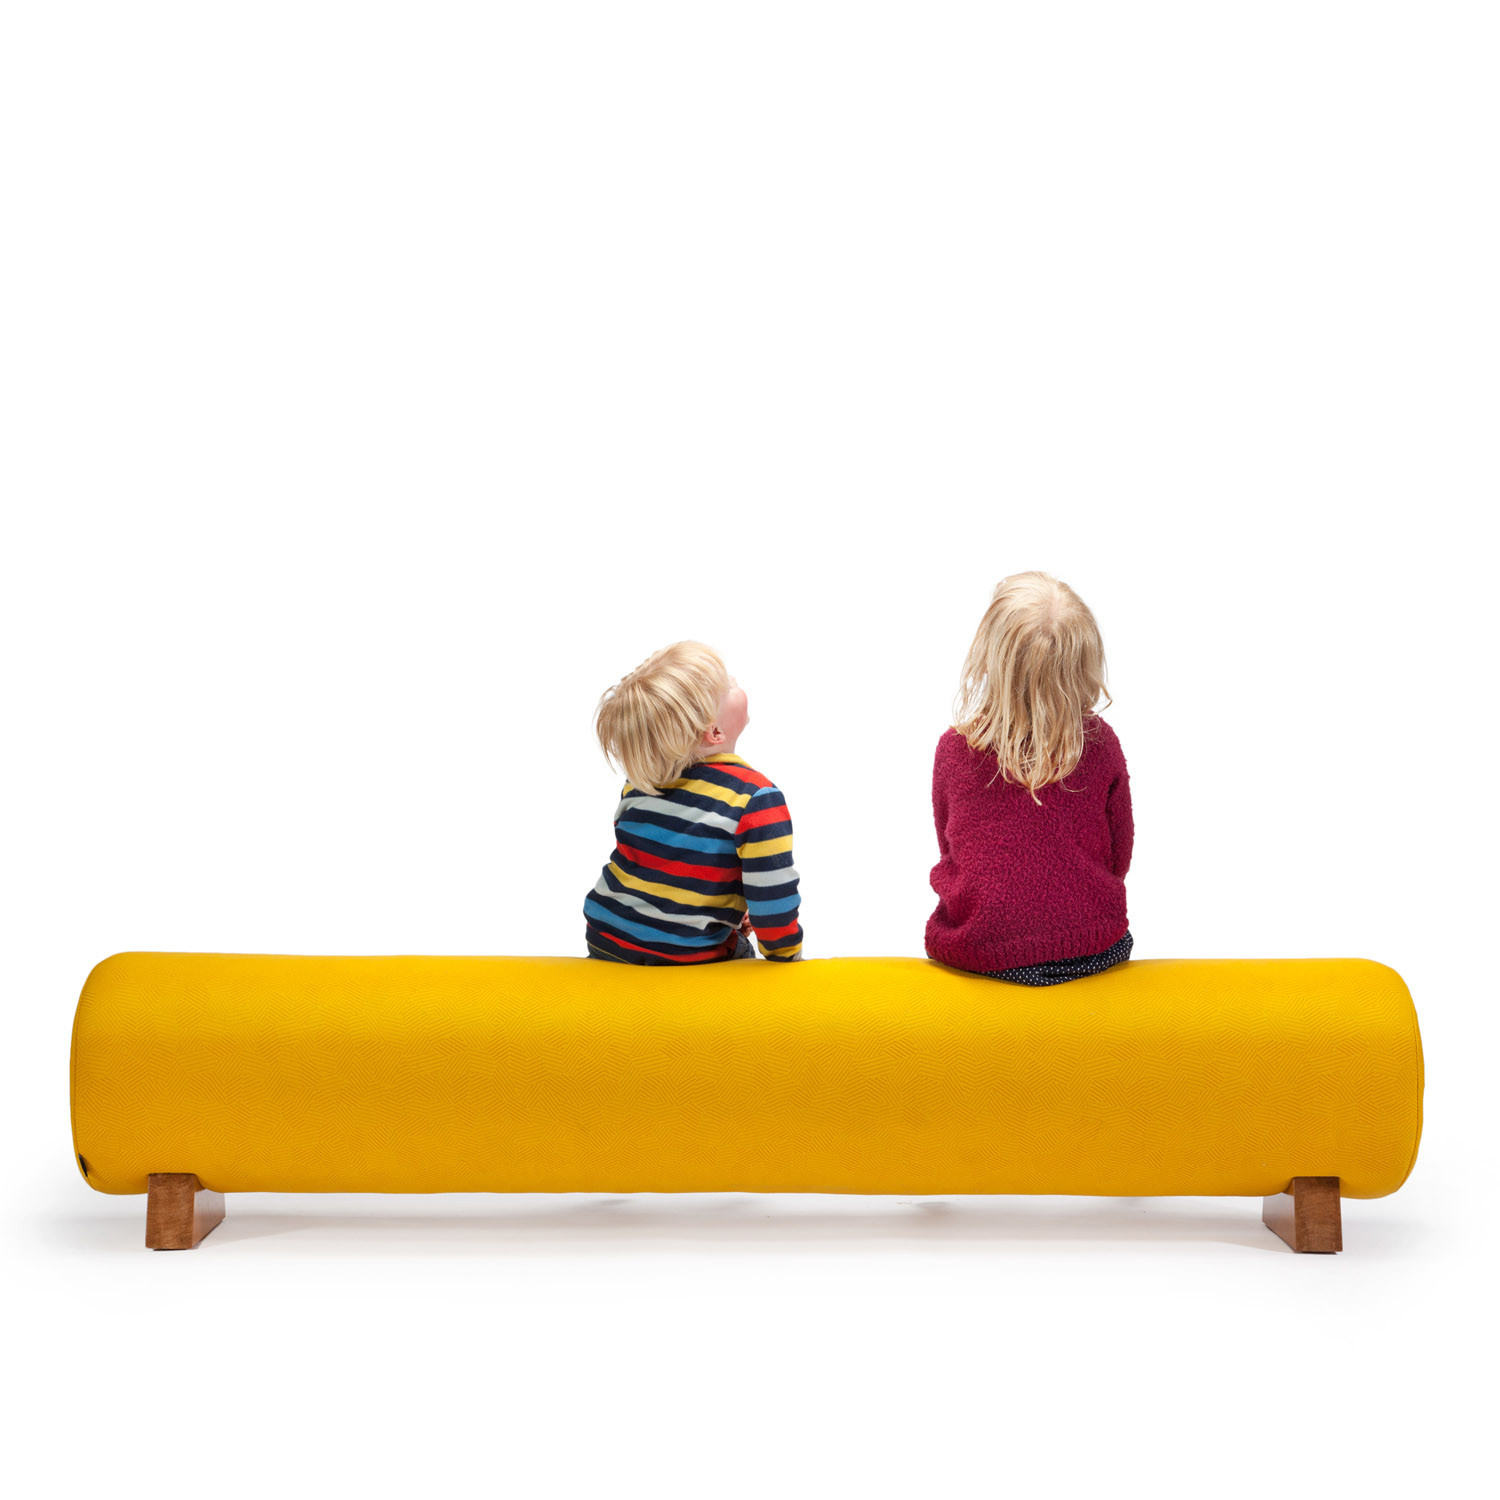 Woody Large Soft Seating Bench